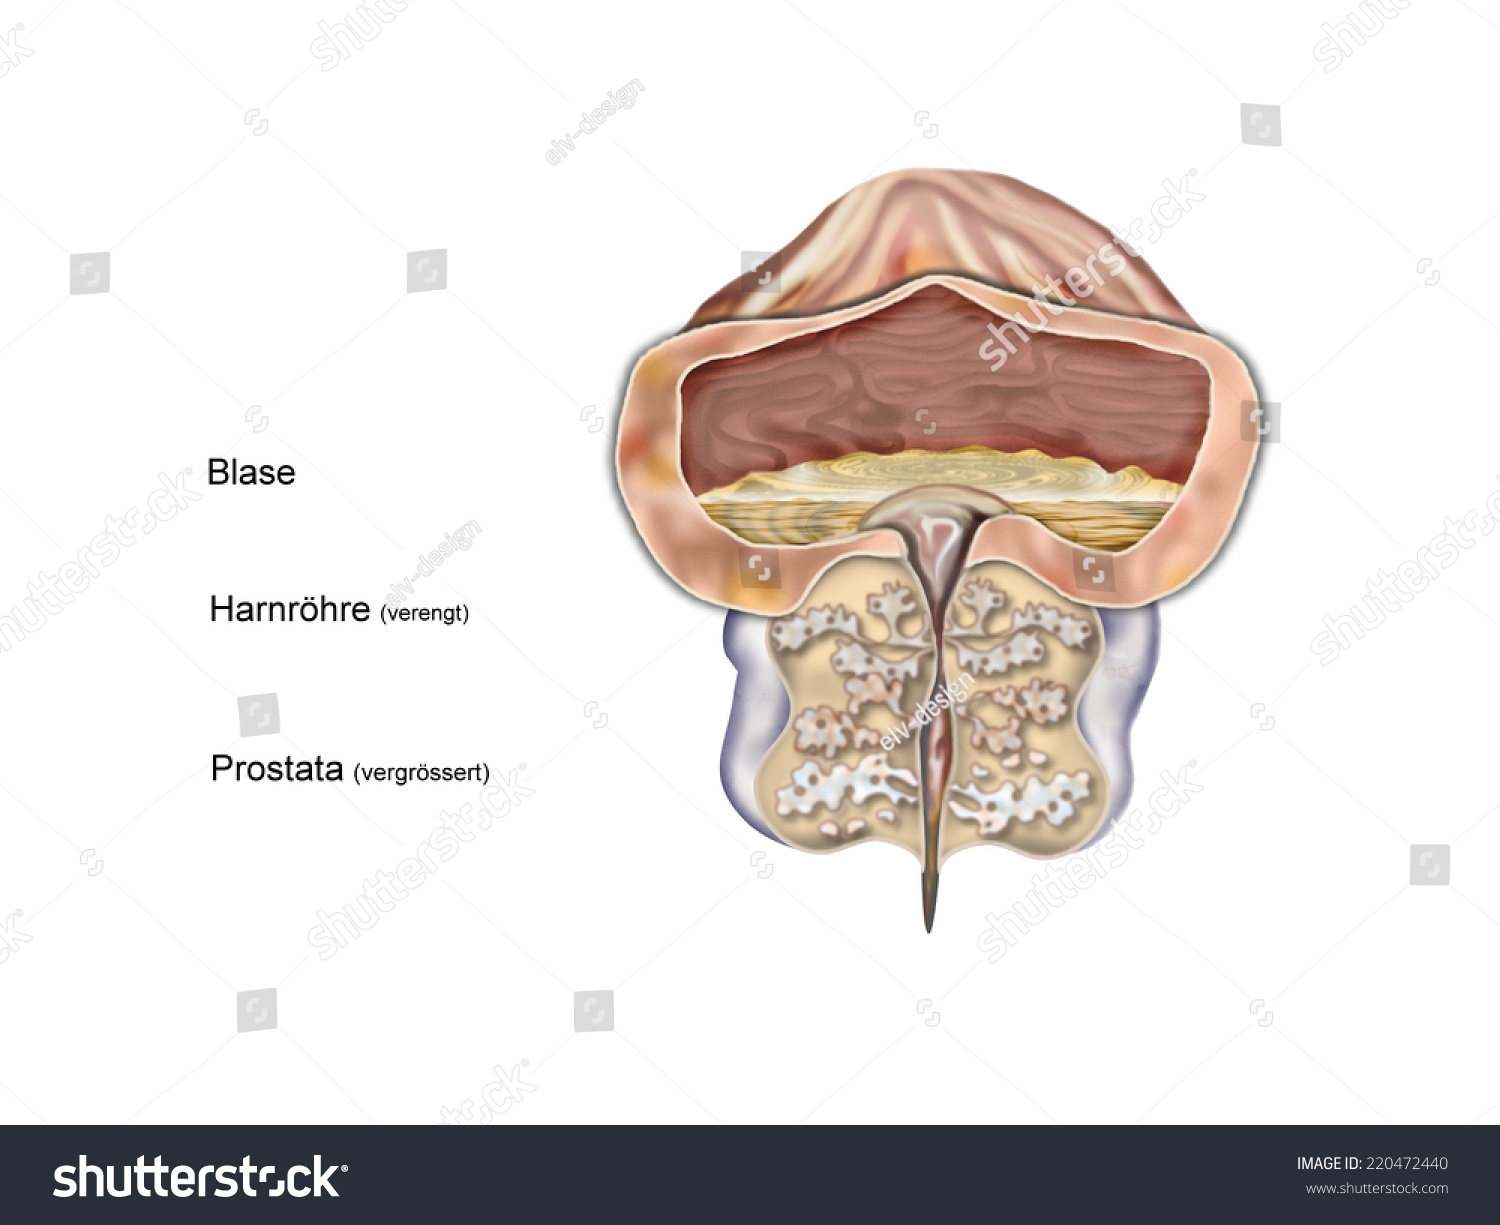 hight resolution of prostate enlarged